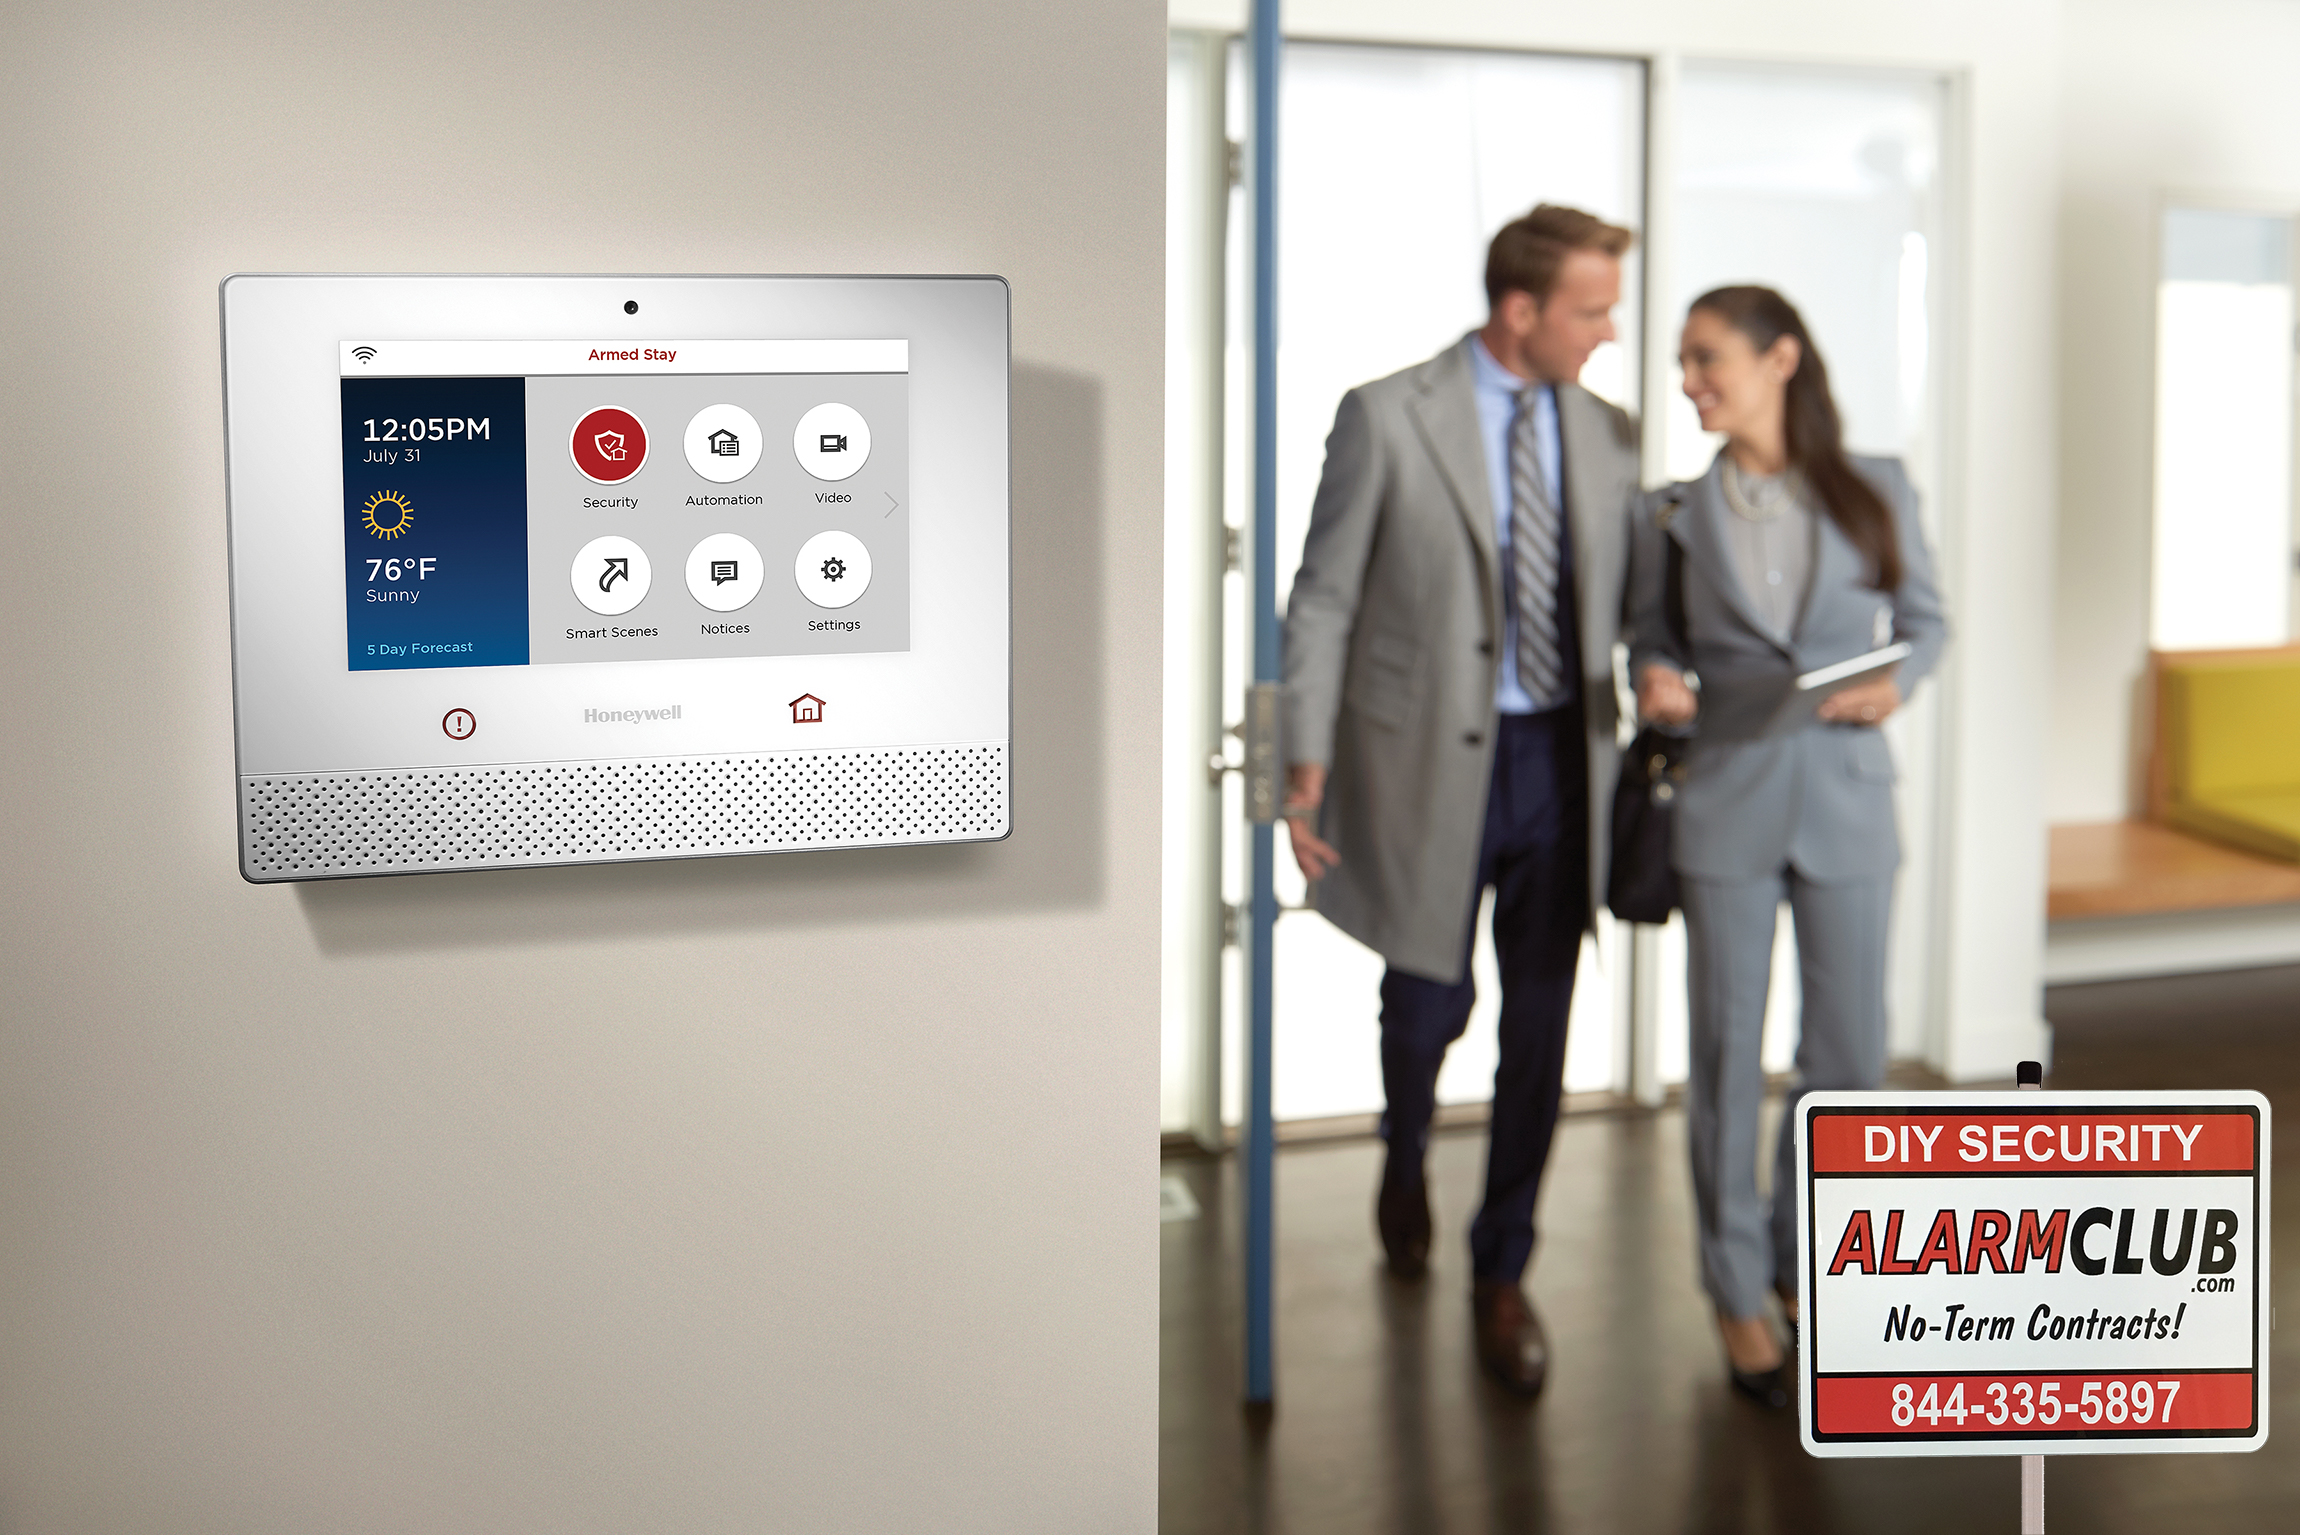 alarmclub releases honeywell lyric security system for diy home security. Black Bedroom Furniture Sets. Home Design Ideas